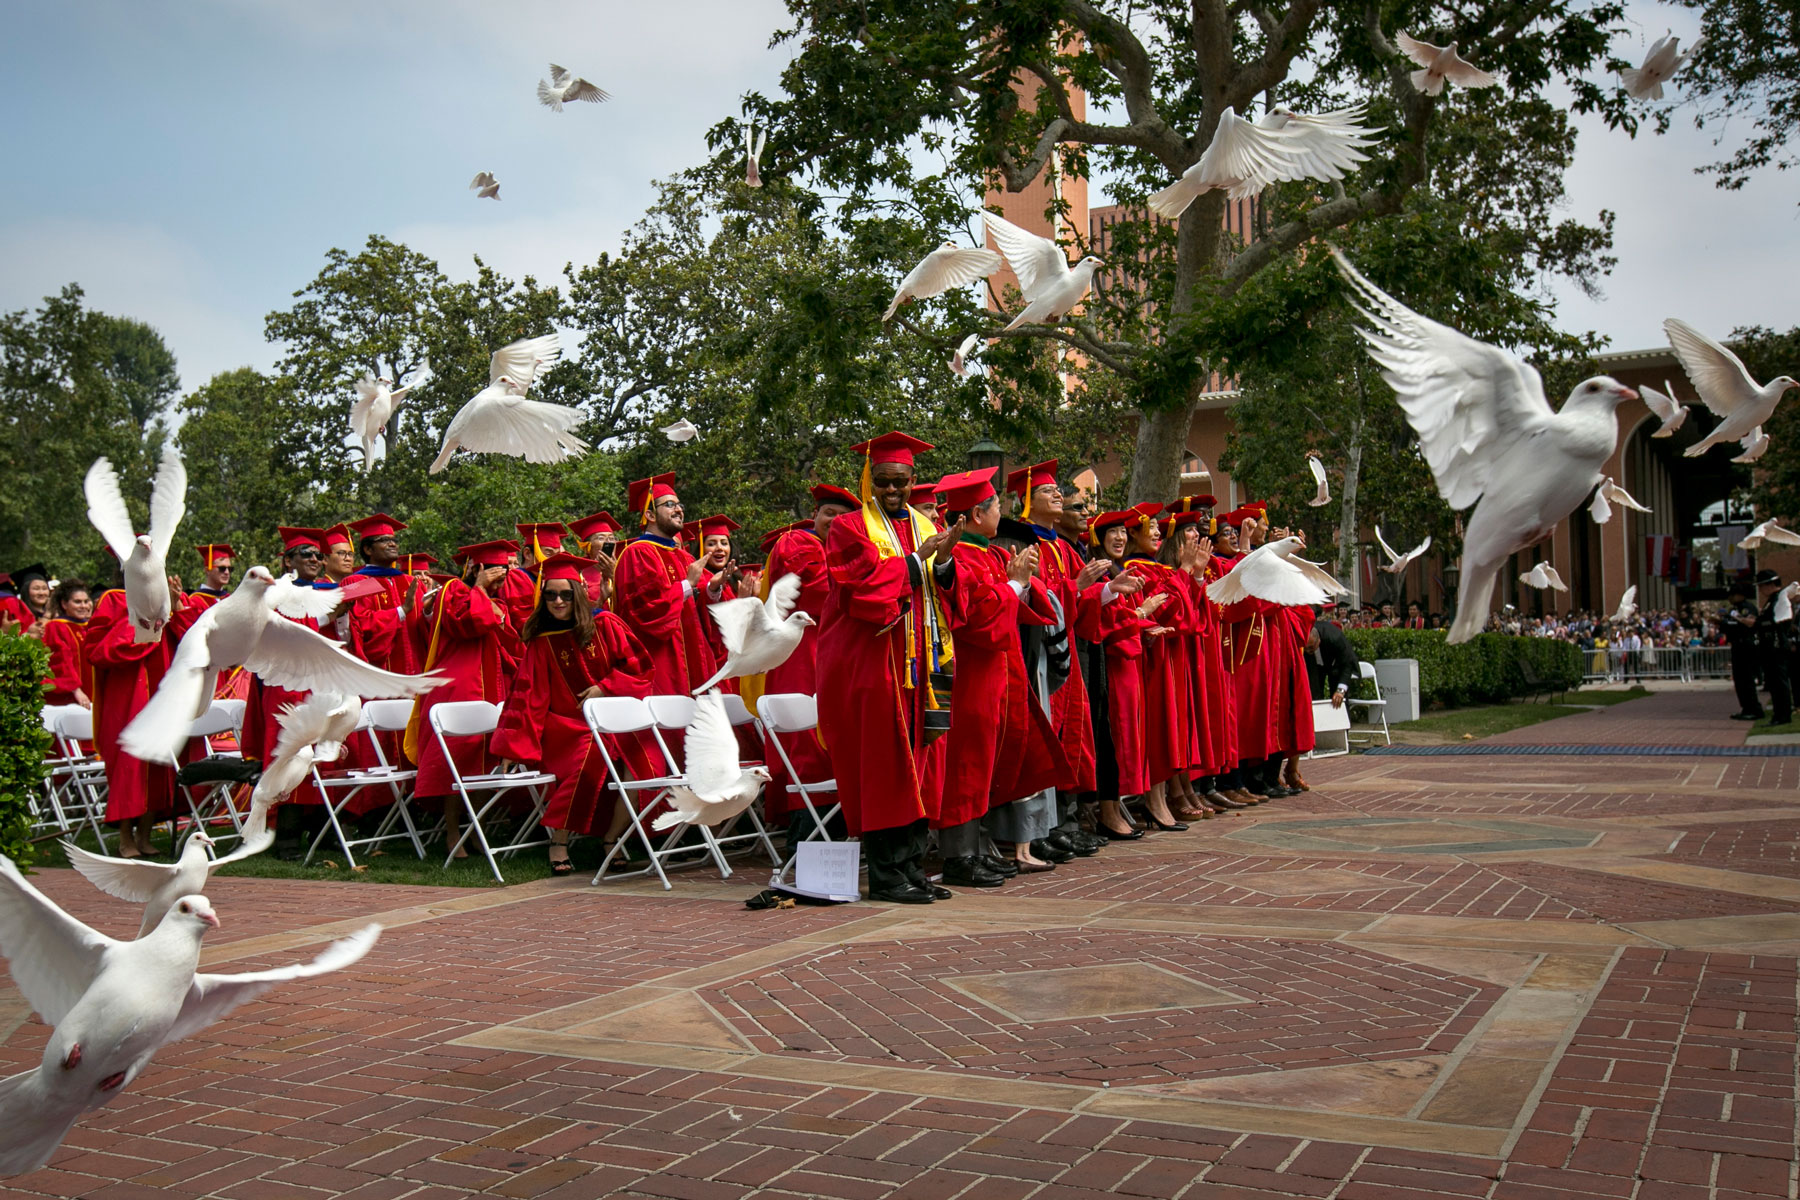 Doves at commencement